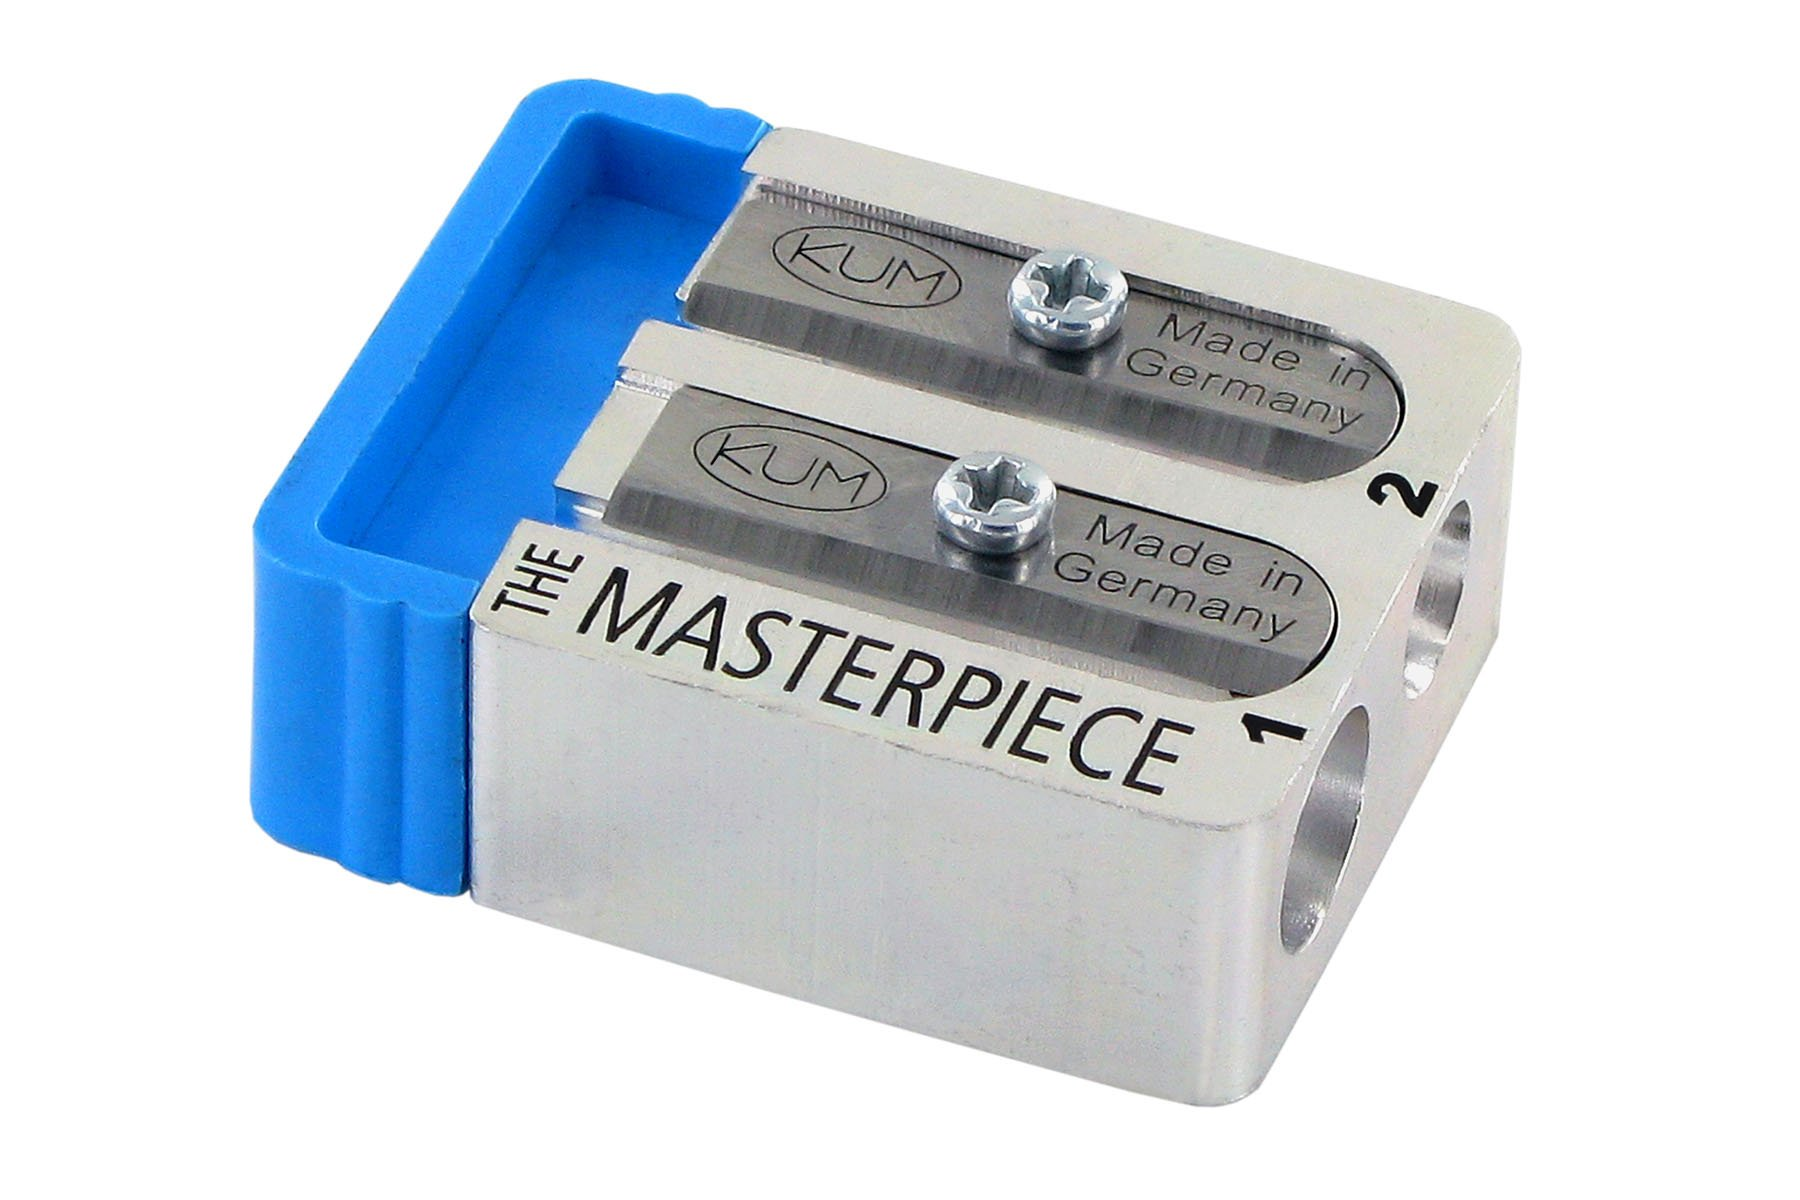 KUM Masterpiece Pencil Sharpener by Kum (Image #1)